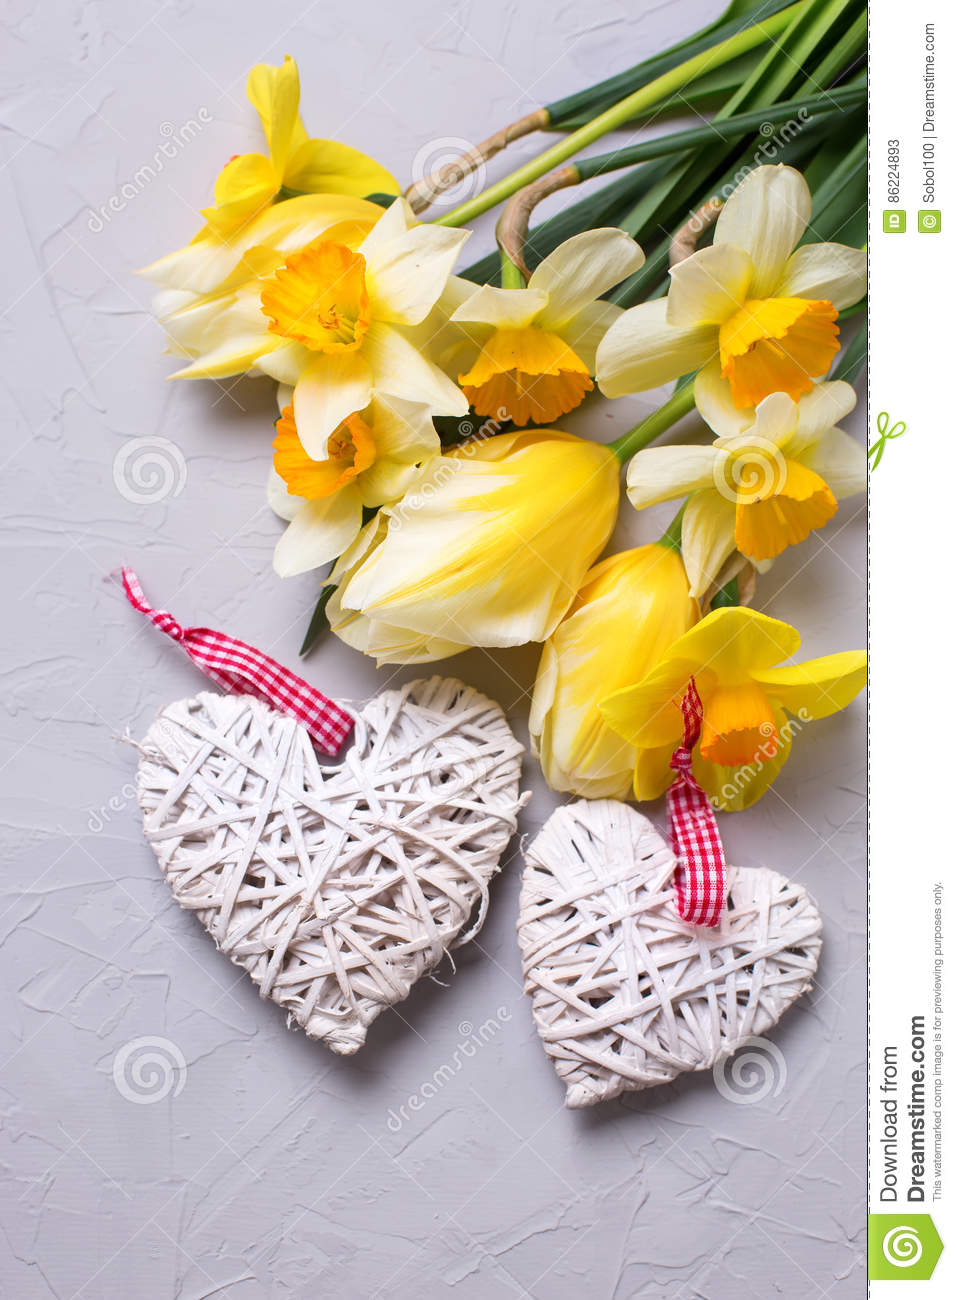 Spring Yellow Flowers And Two Decorative Hearts On Grey Texture